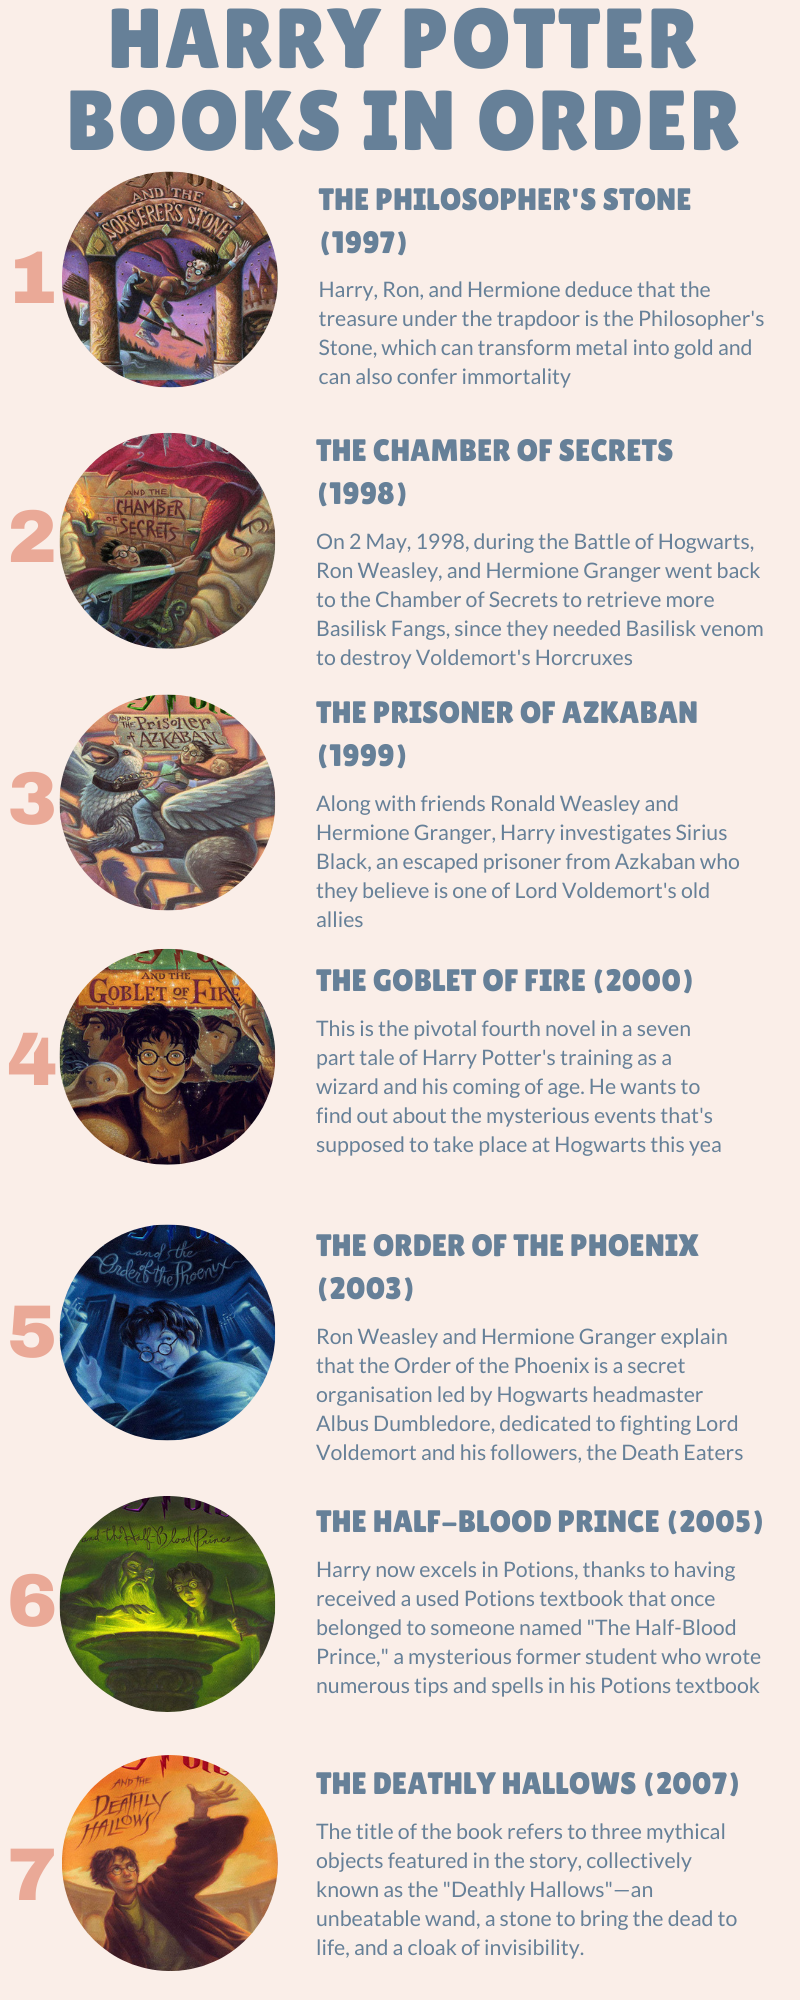 Harry Potter Books In Order By J K Rowling All Harry Potter Books All Harry P Harry Potter Audio Books Harry Potter Book Order Harry Potter Movie Order